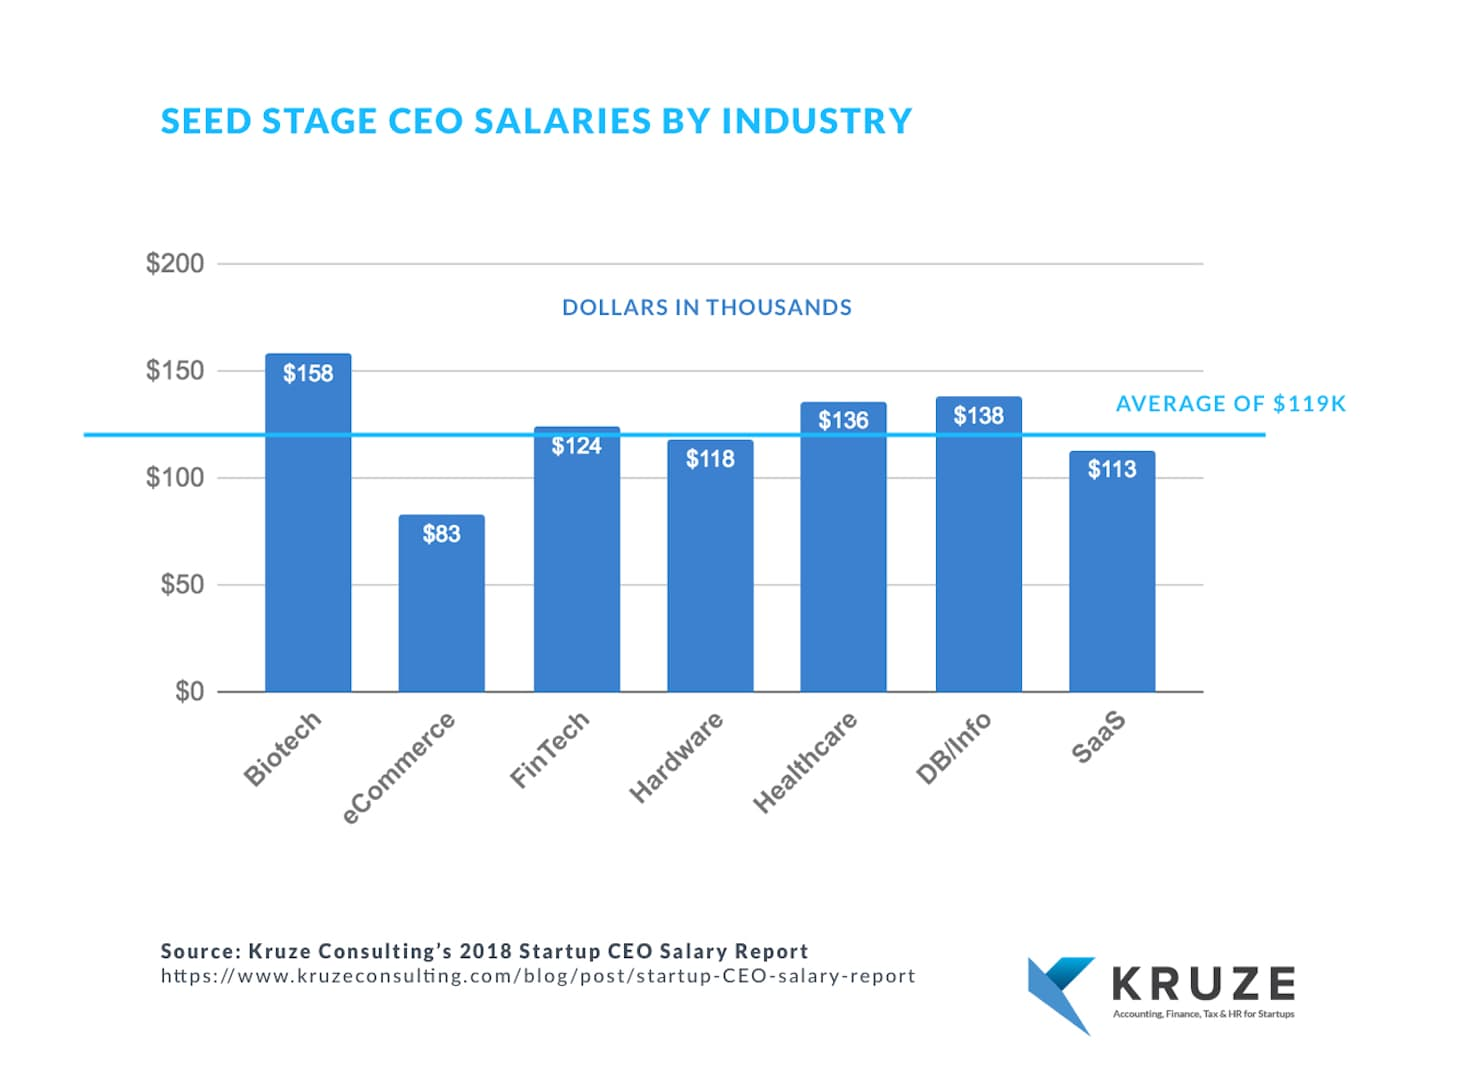 Seed Stage CEO Salaries by Industry